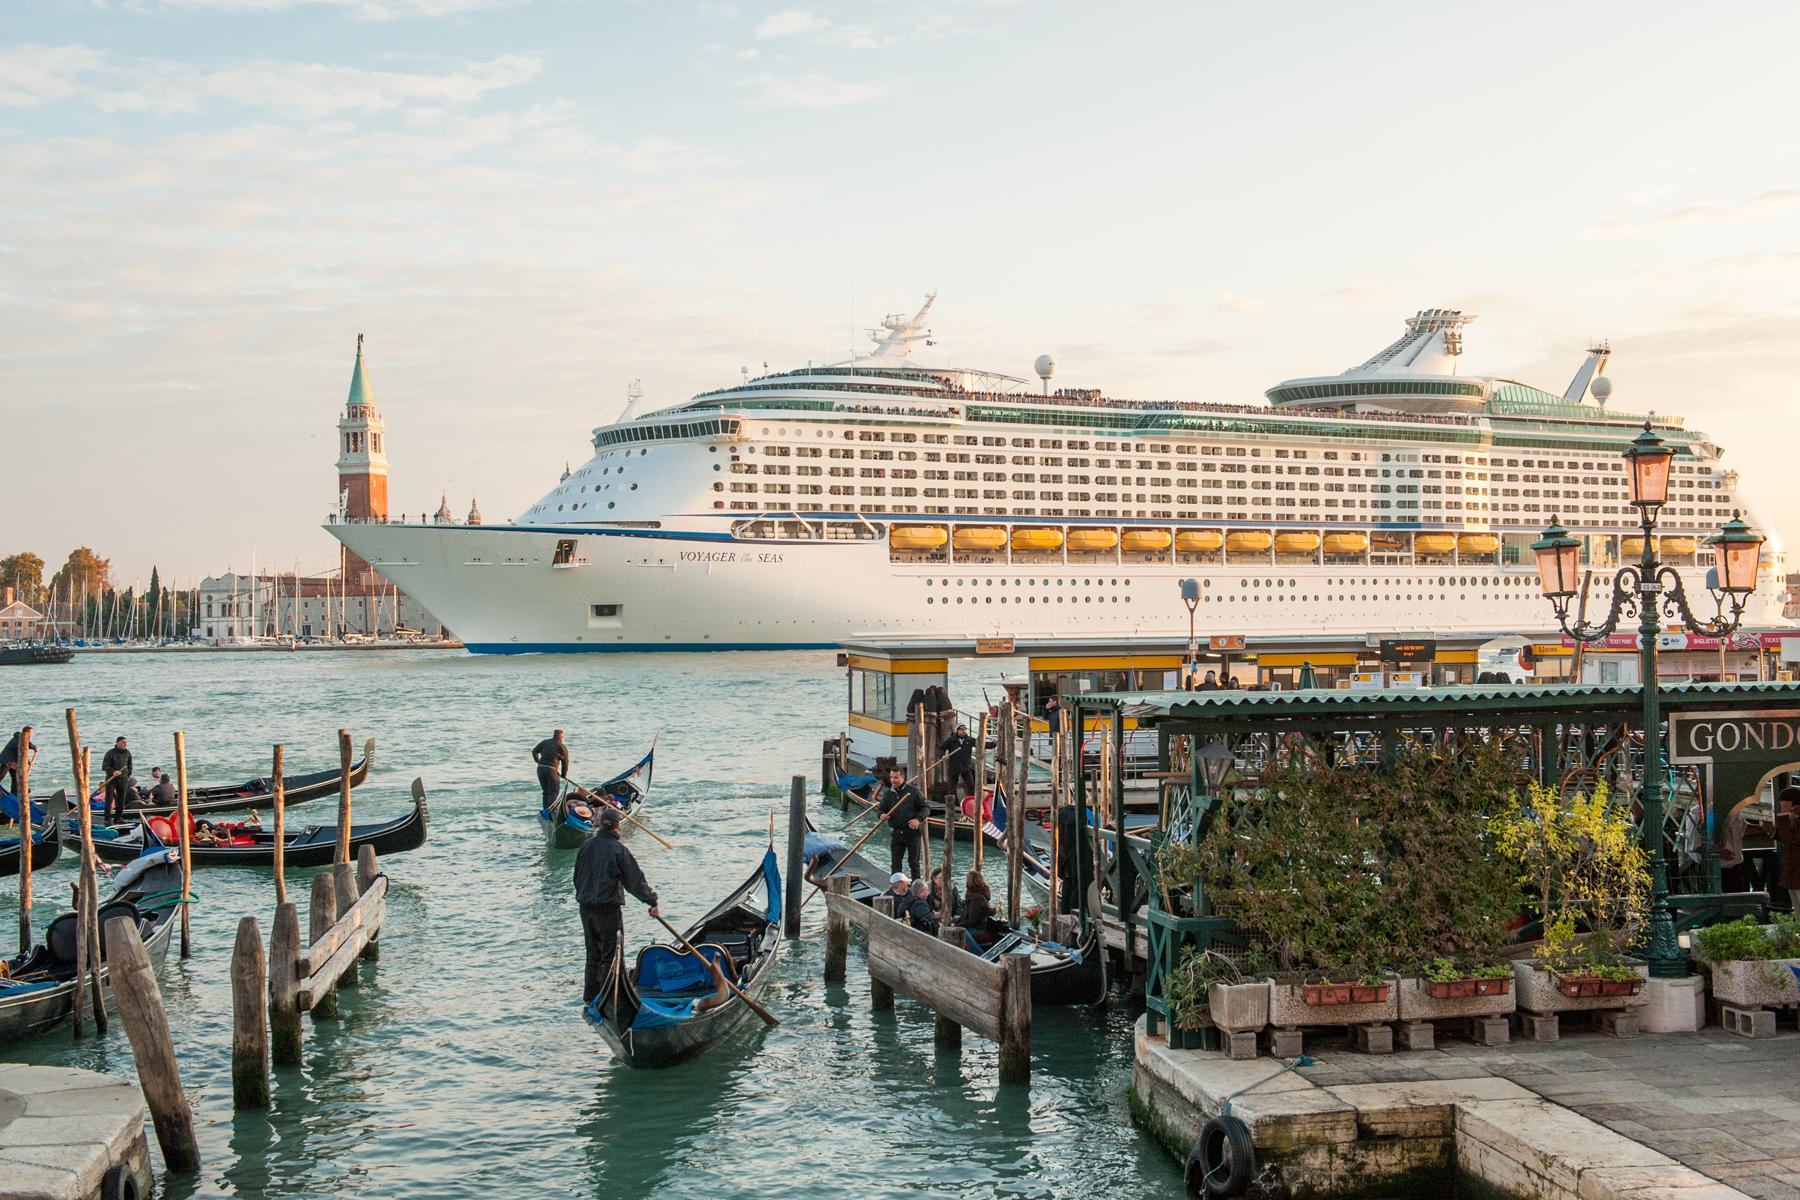 Cruise ship collides with tourist river boat on busy canal in Venice